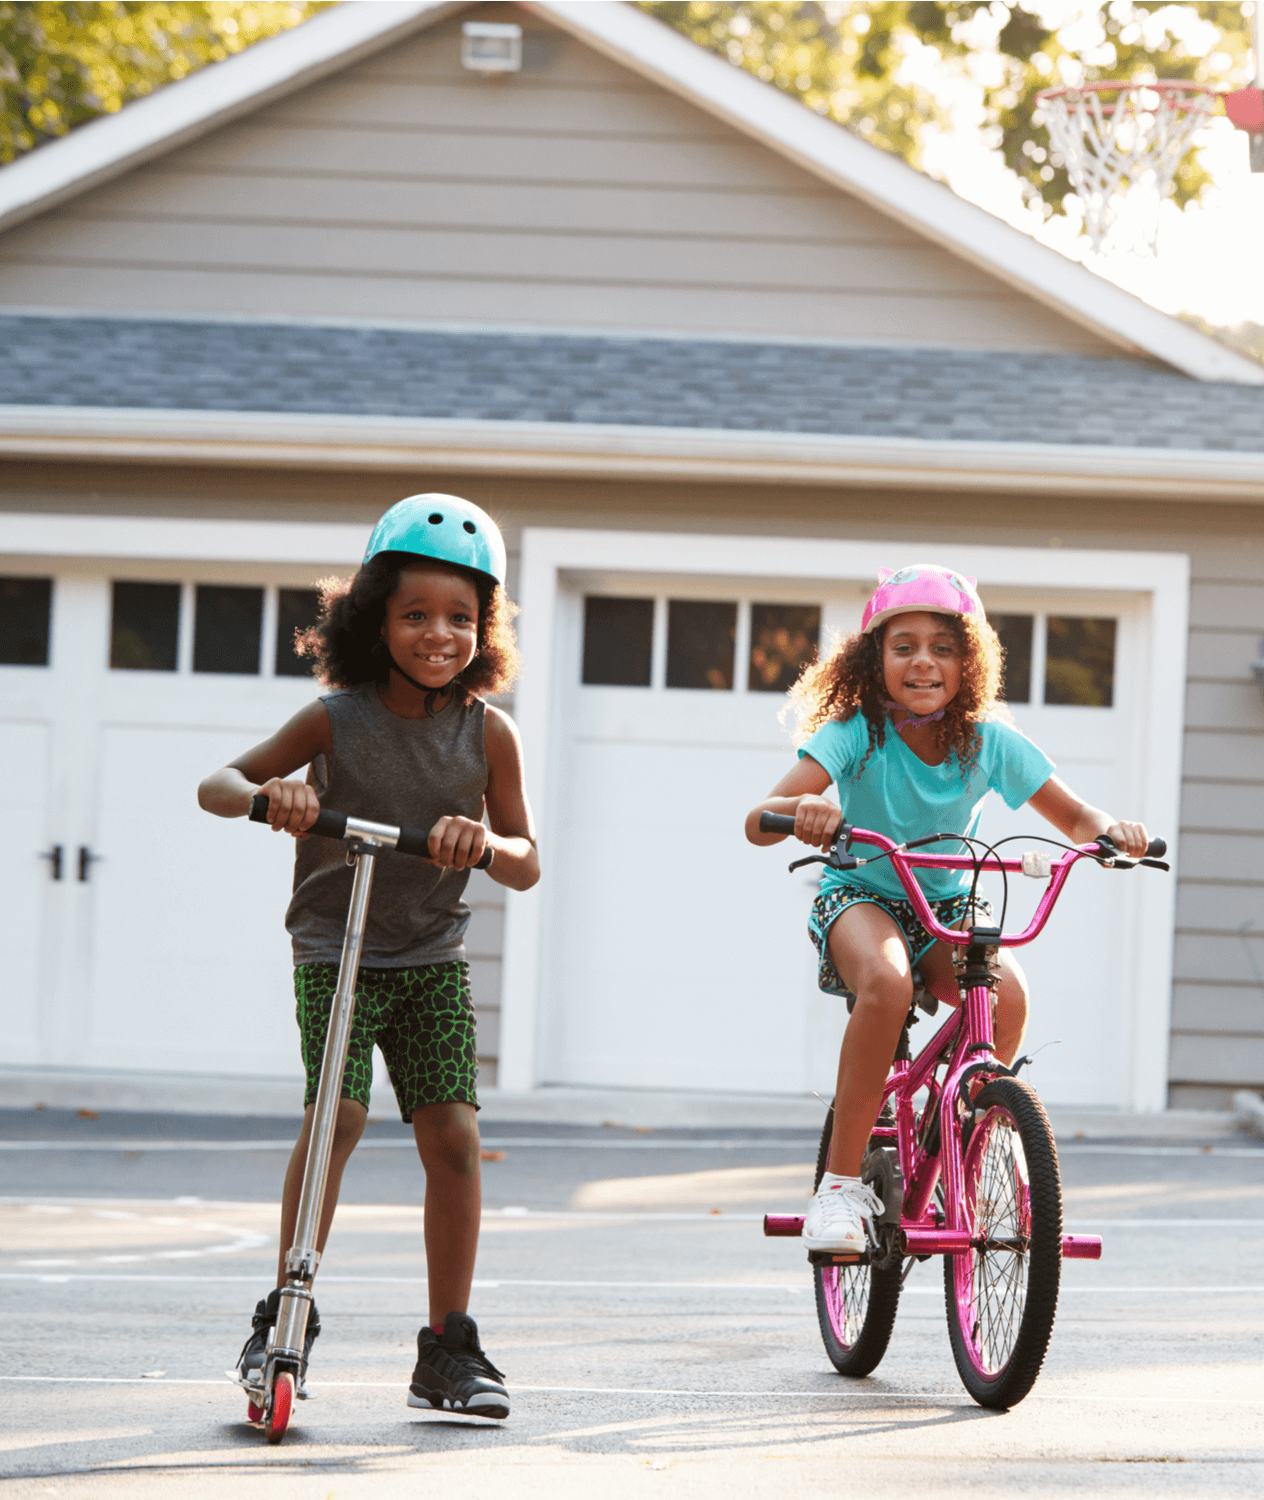 Portrait of two young African American girls. One is riding a scooter and the other is riding a bike.